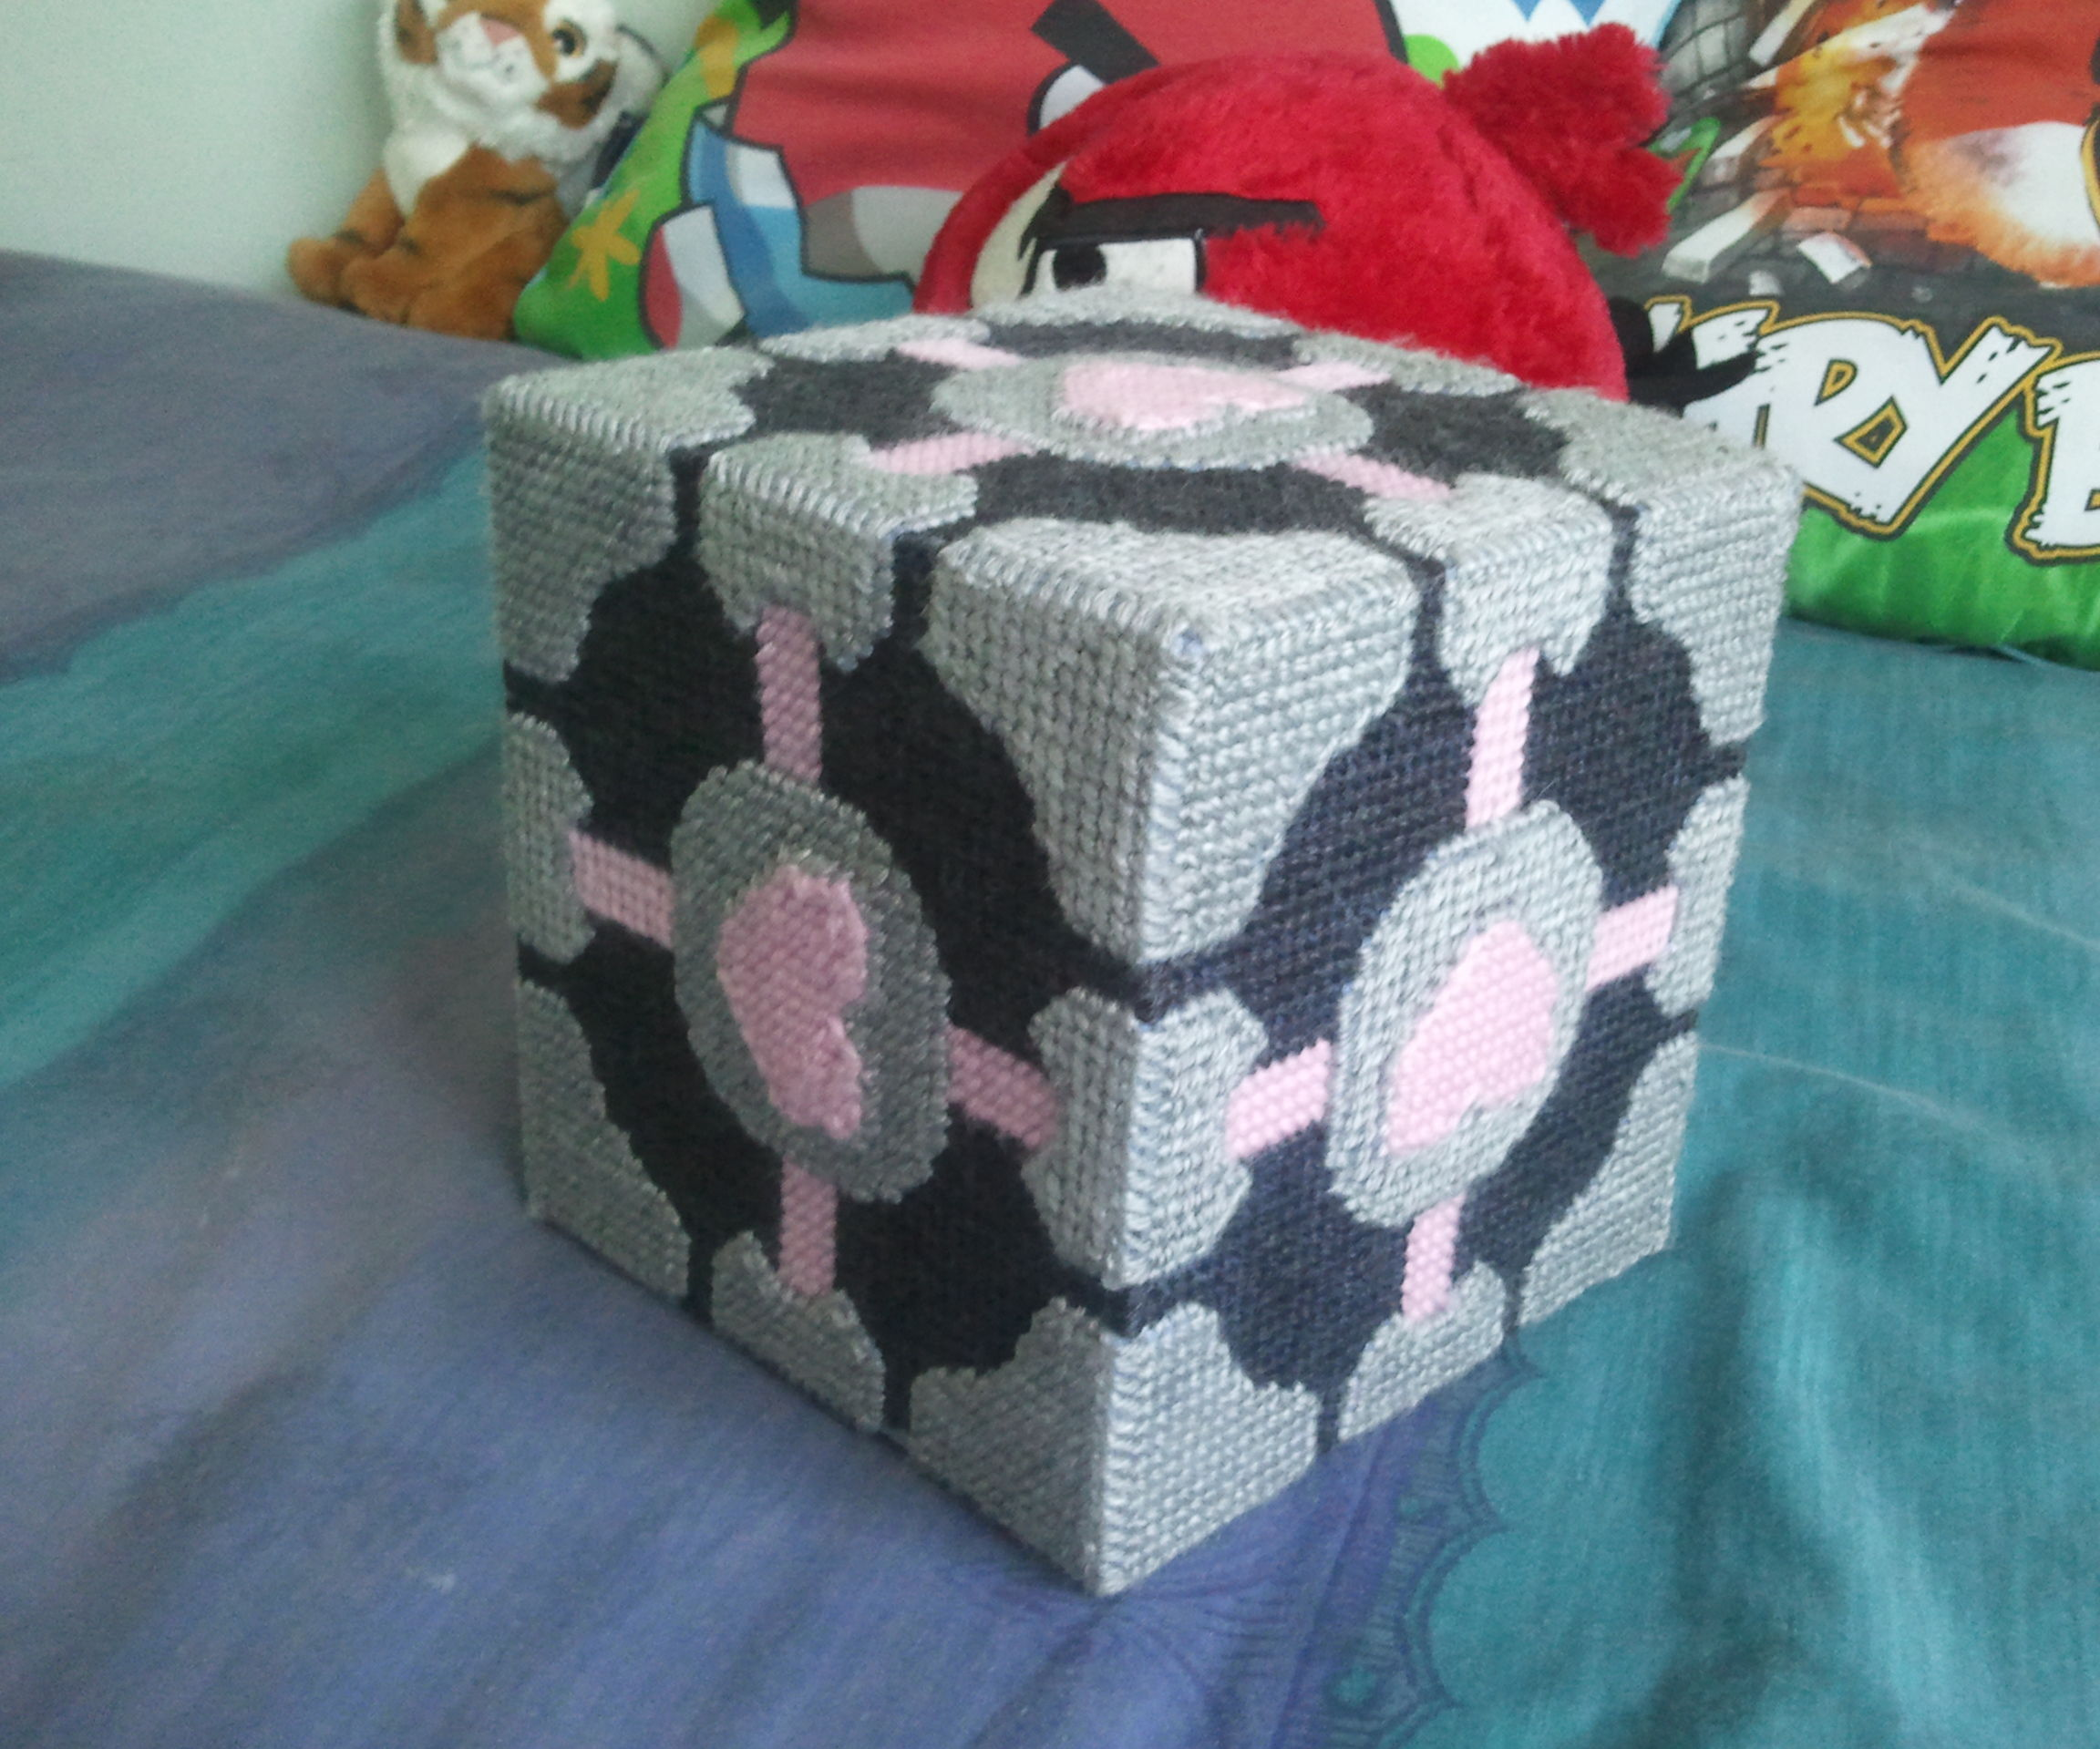 How to make a Weighted Companion Cube!